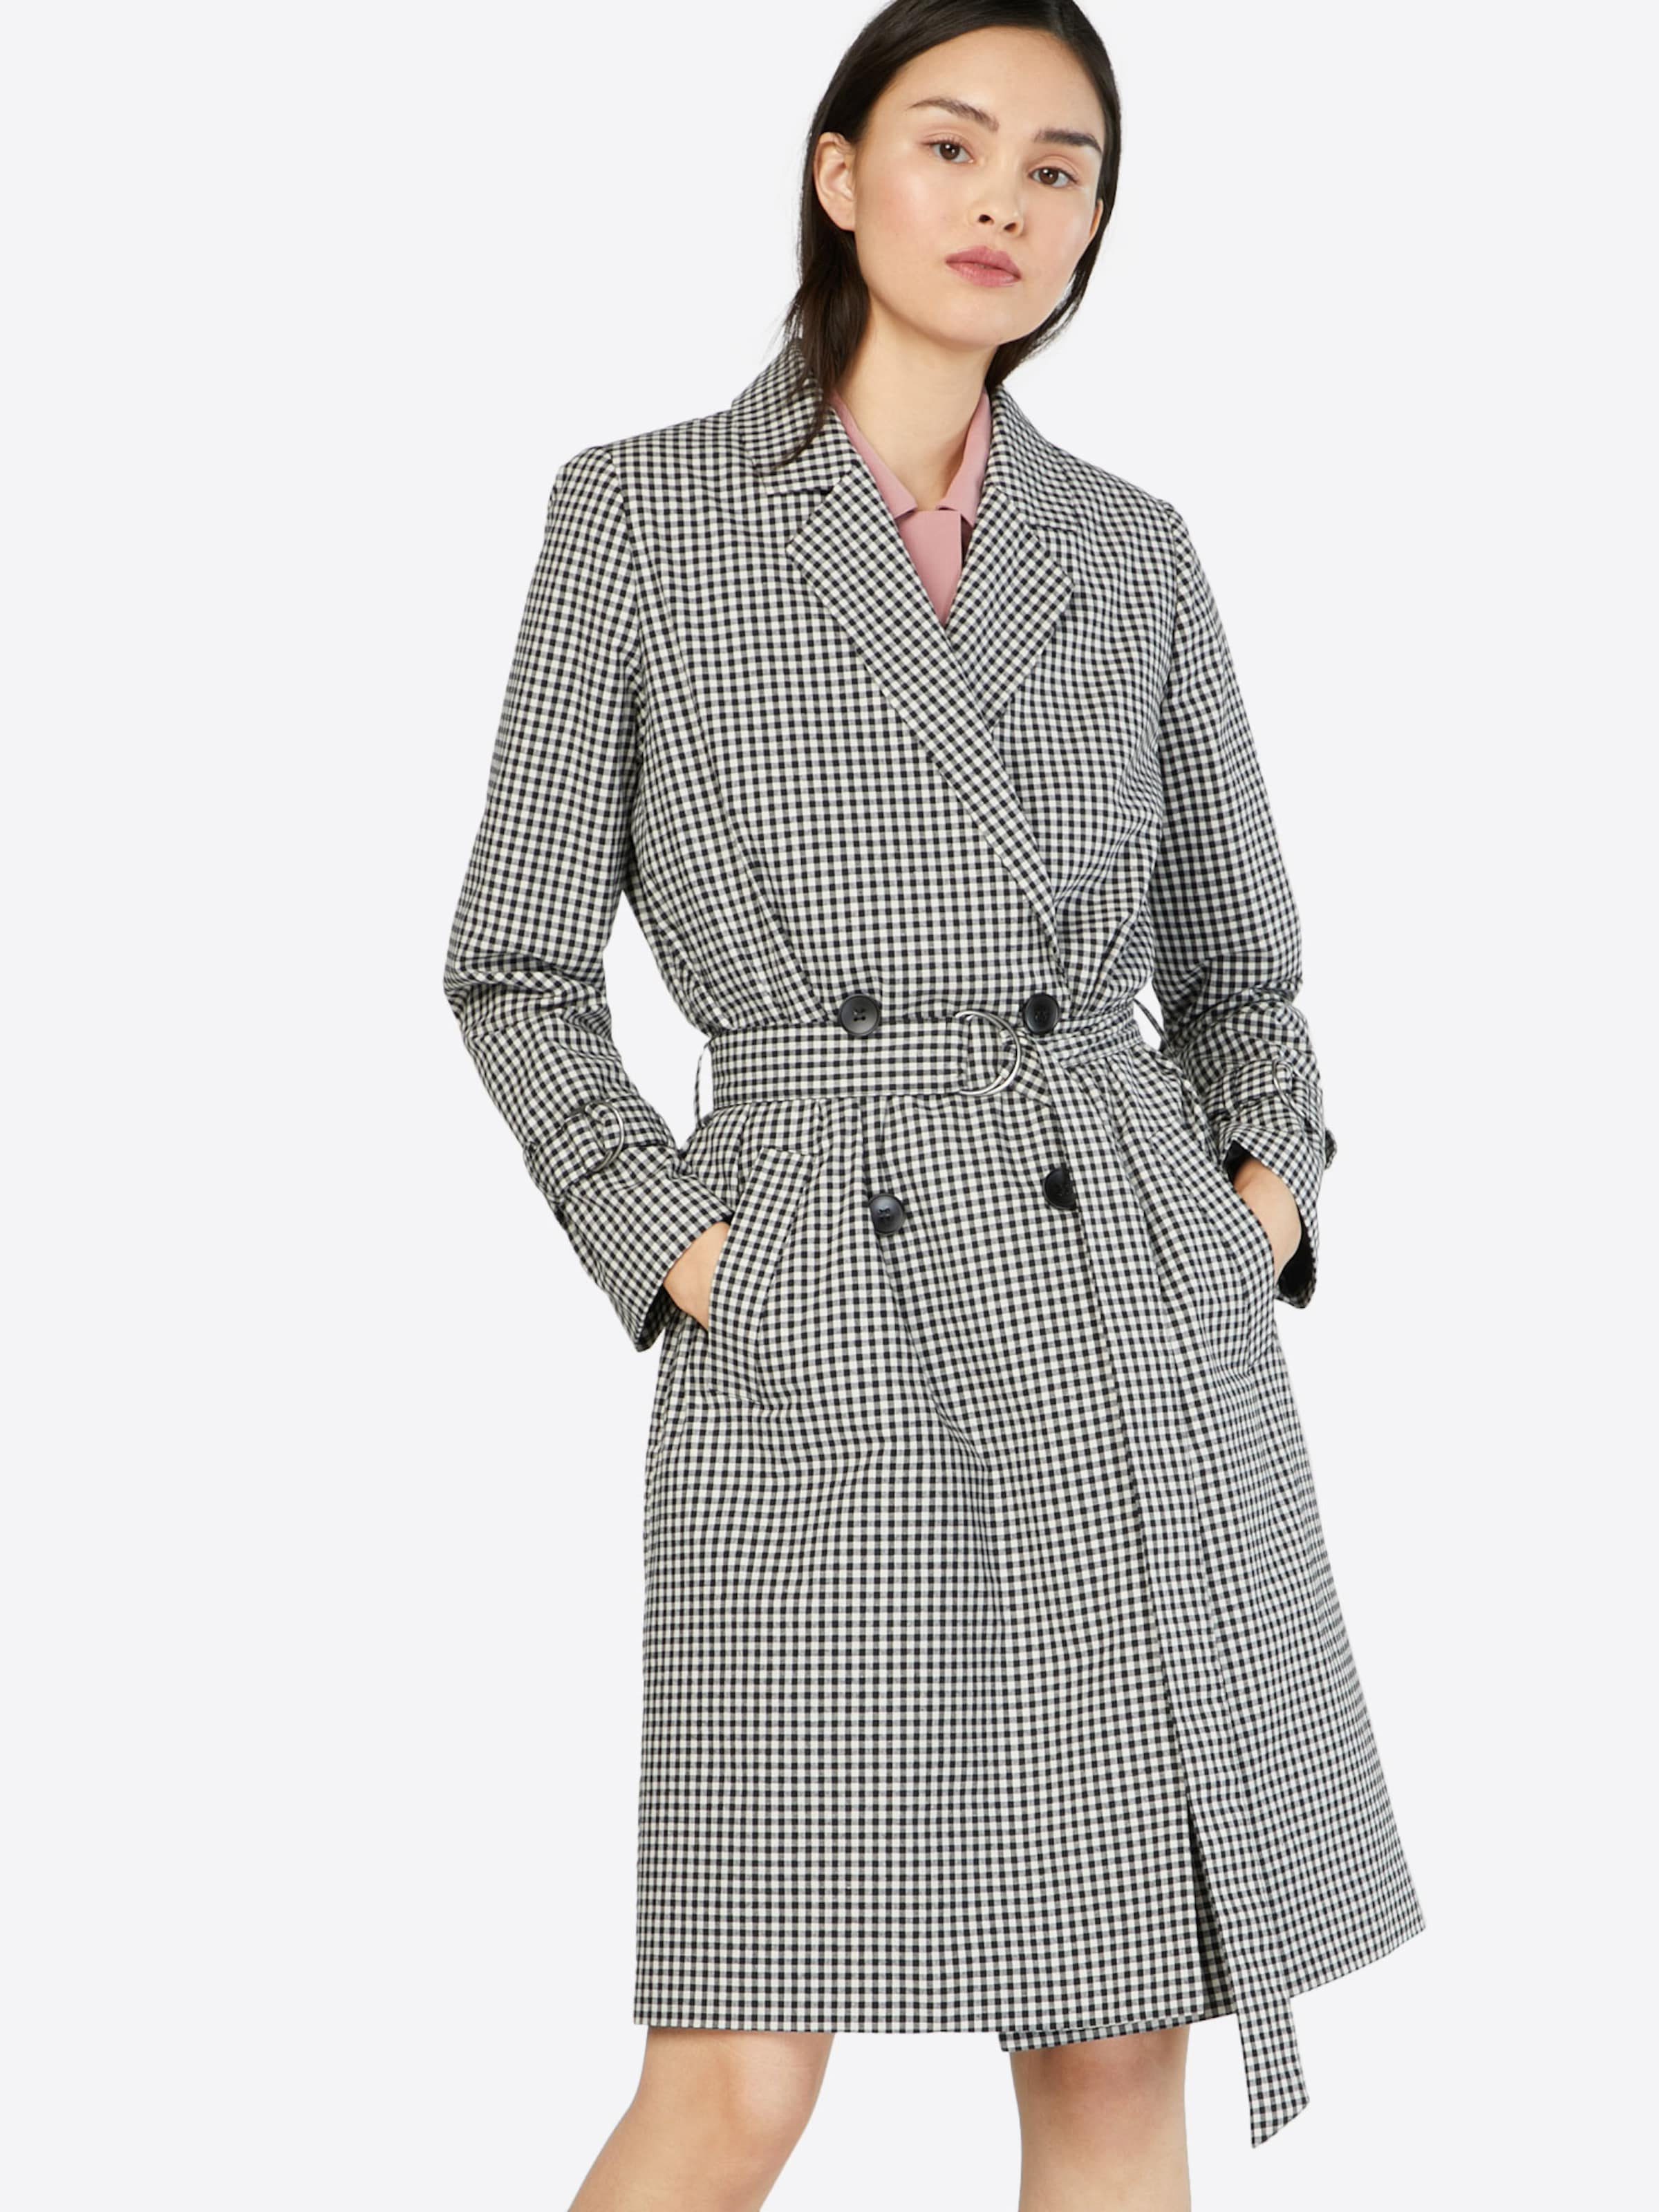 In Trenchcoat SchwarzWeiß 'zophie' Minimum 3lKFcT1J